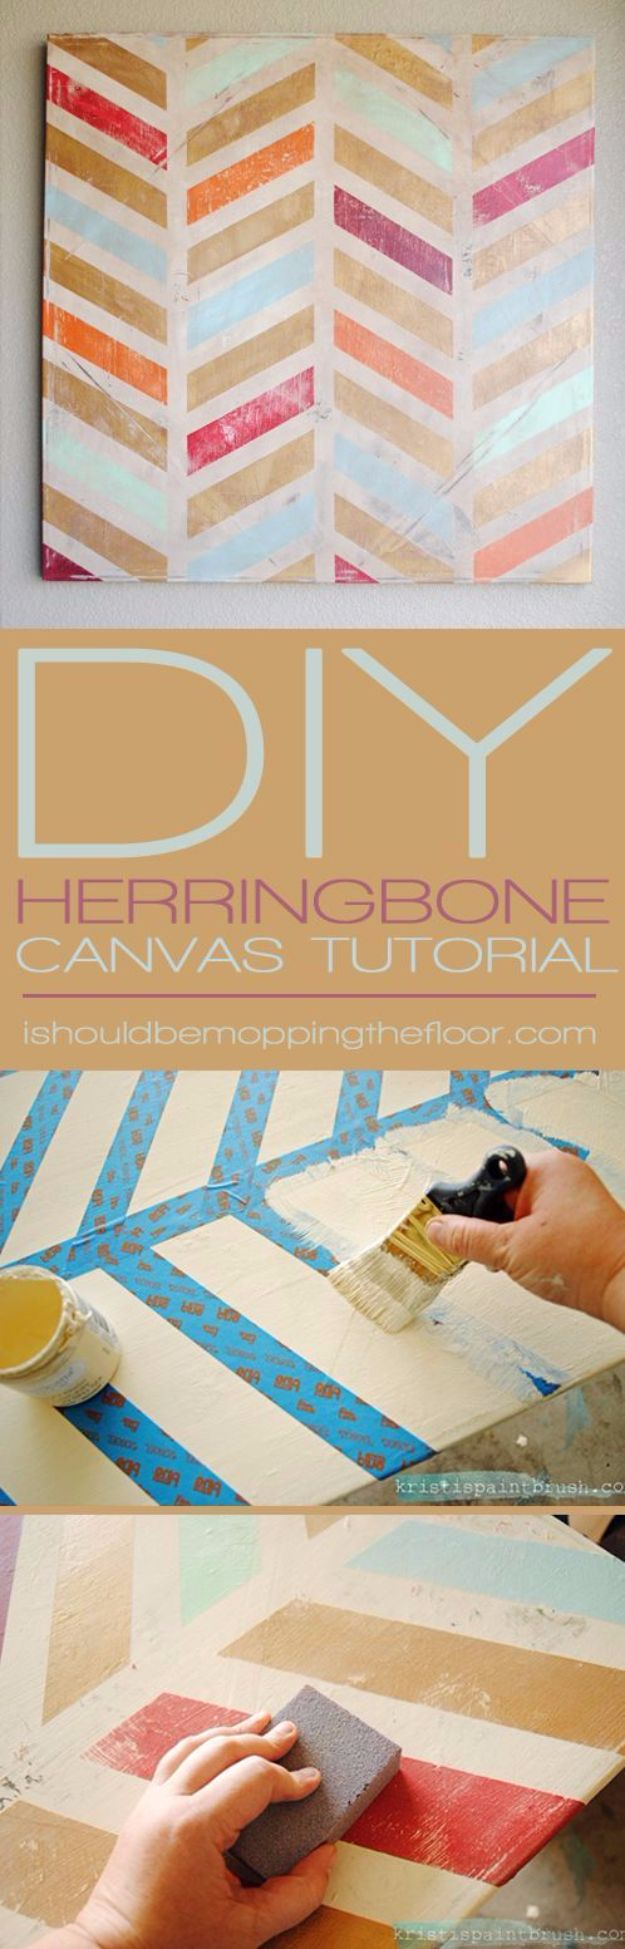 Diy Canvas Painting Ideas Herringbone Art Cool And Easy Wall